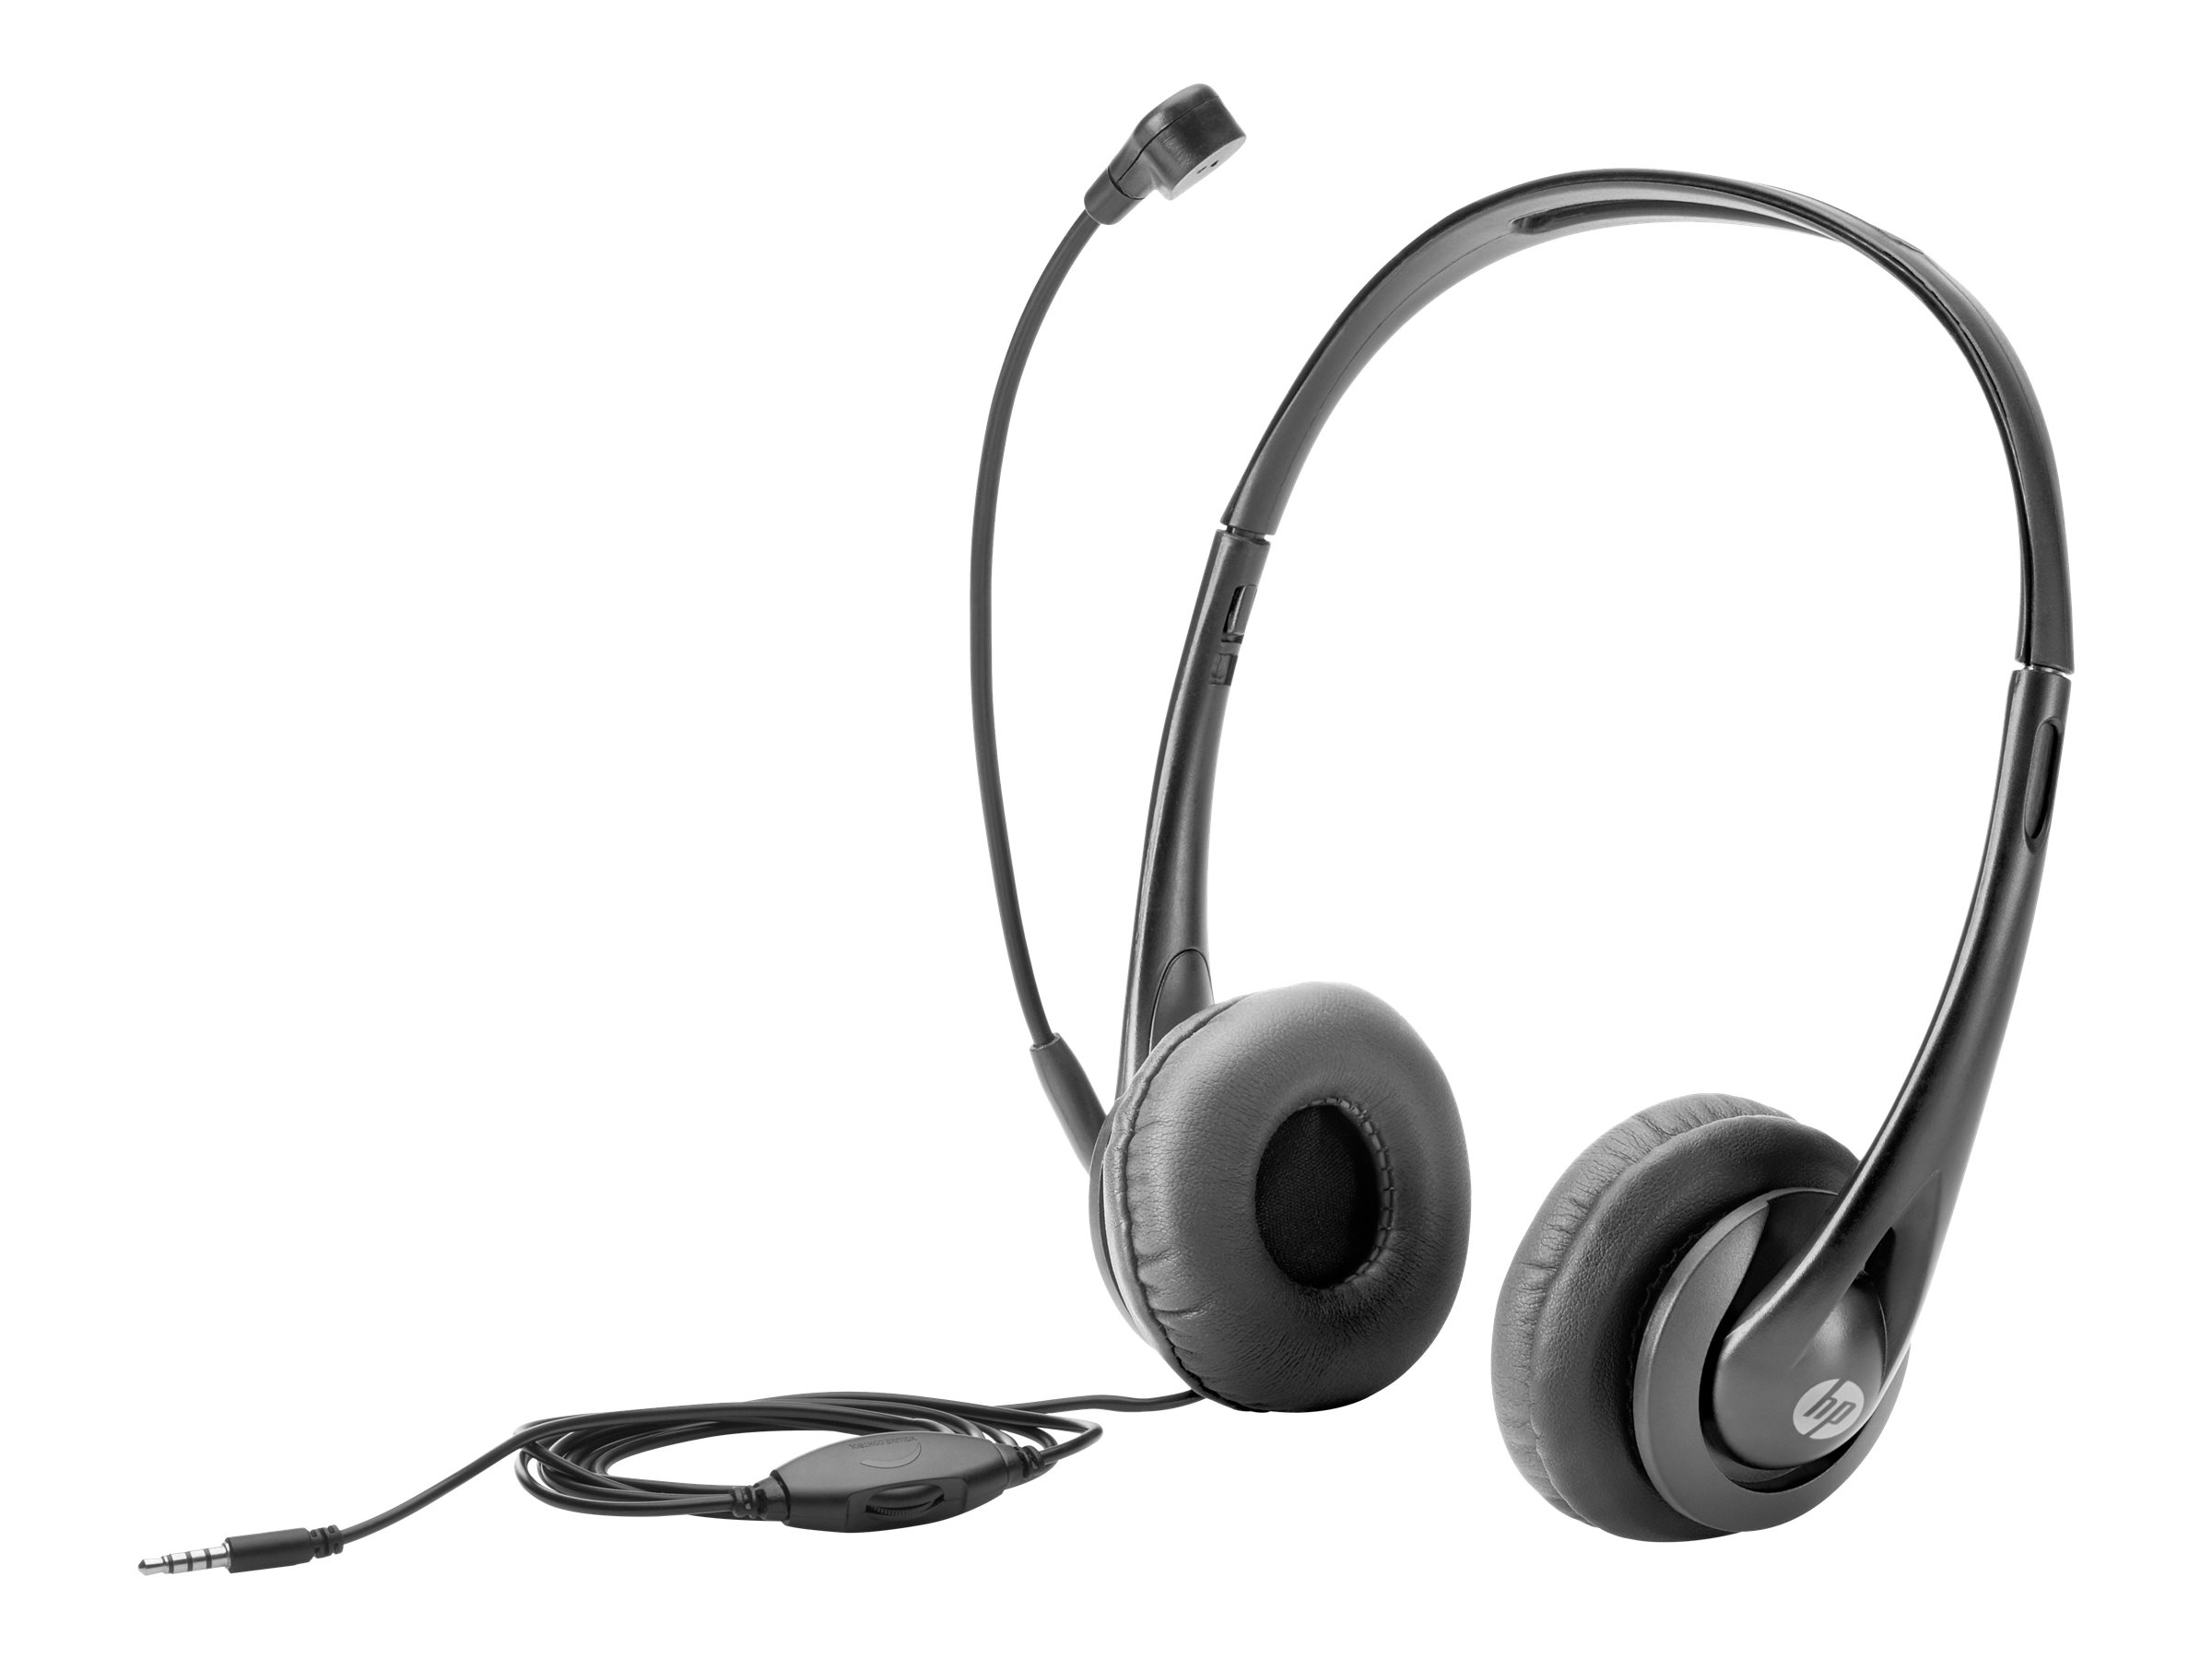 HP - Headset - On-Ear - verkabelt - Black Jack - für EliteBook 1040 G4; ProBook; x2; ZBook Studio G4 Mobile Workstation